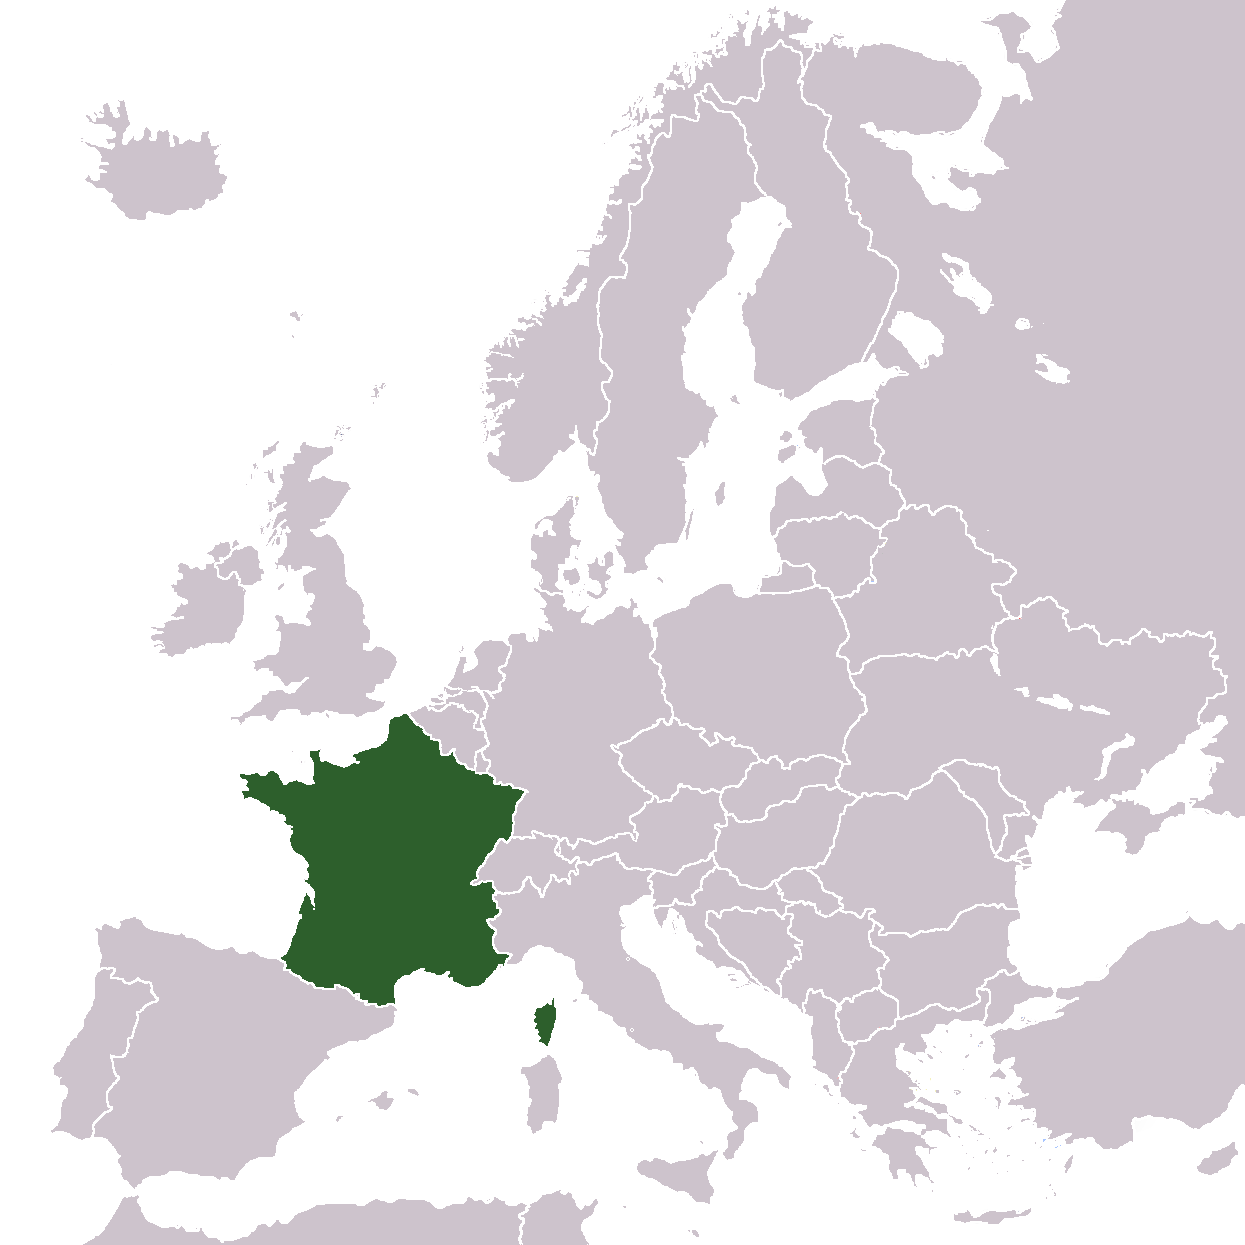 France Map Png.Europe Location France Mapsof Net